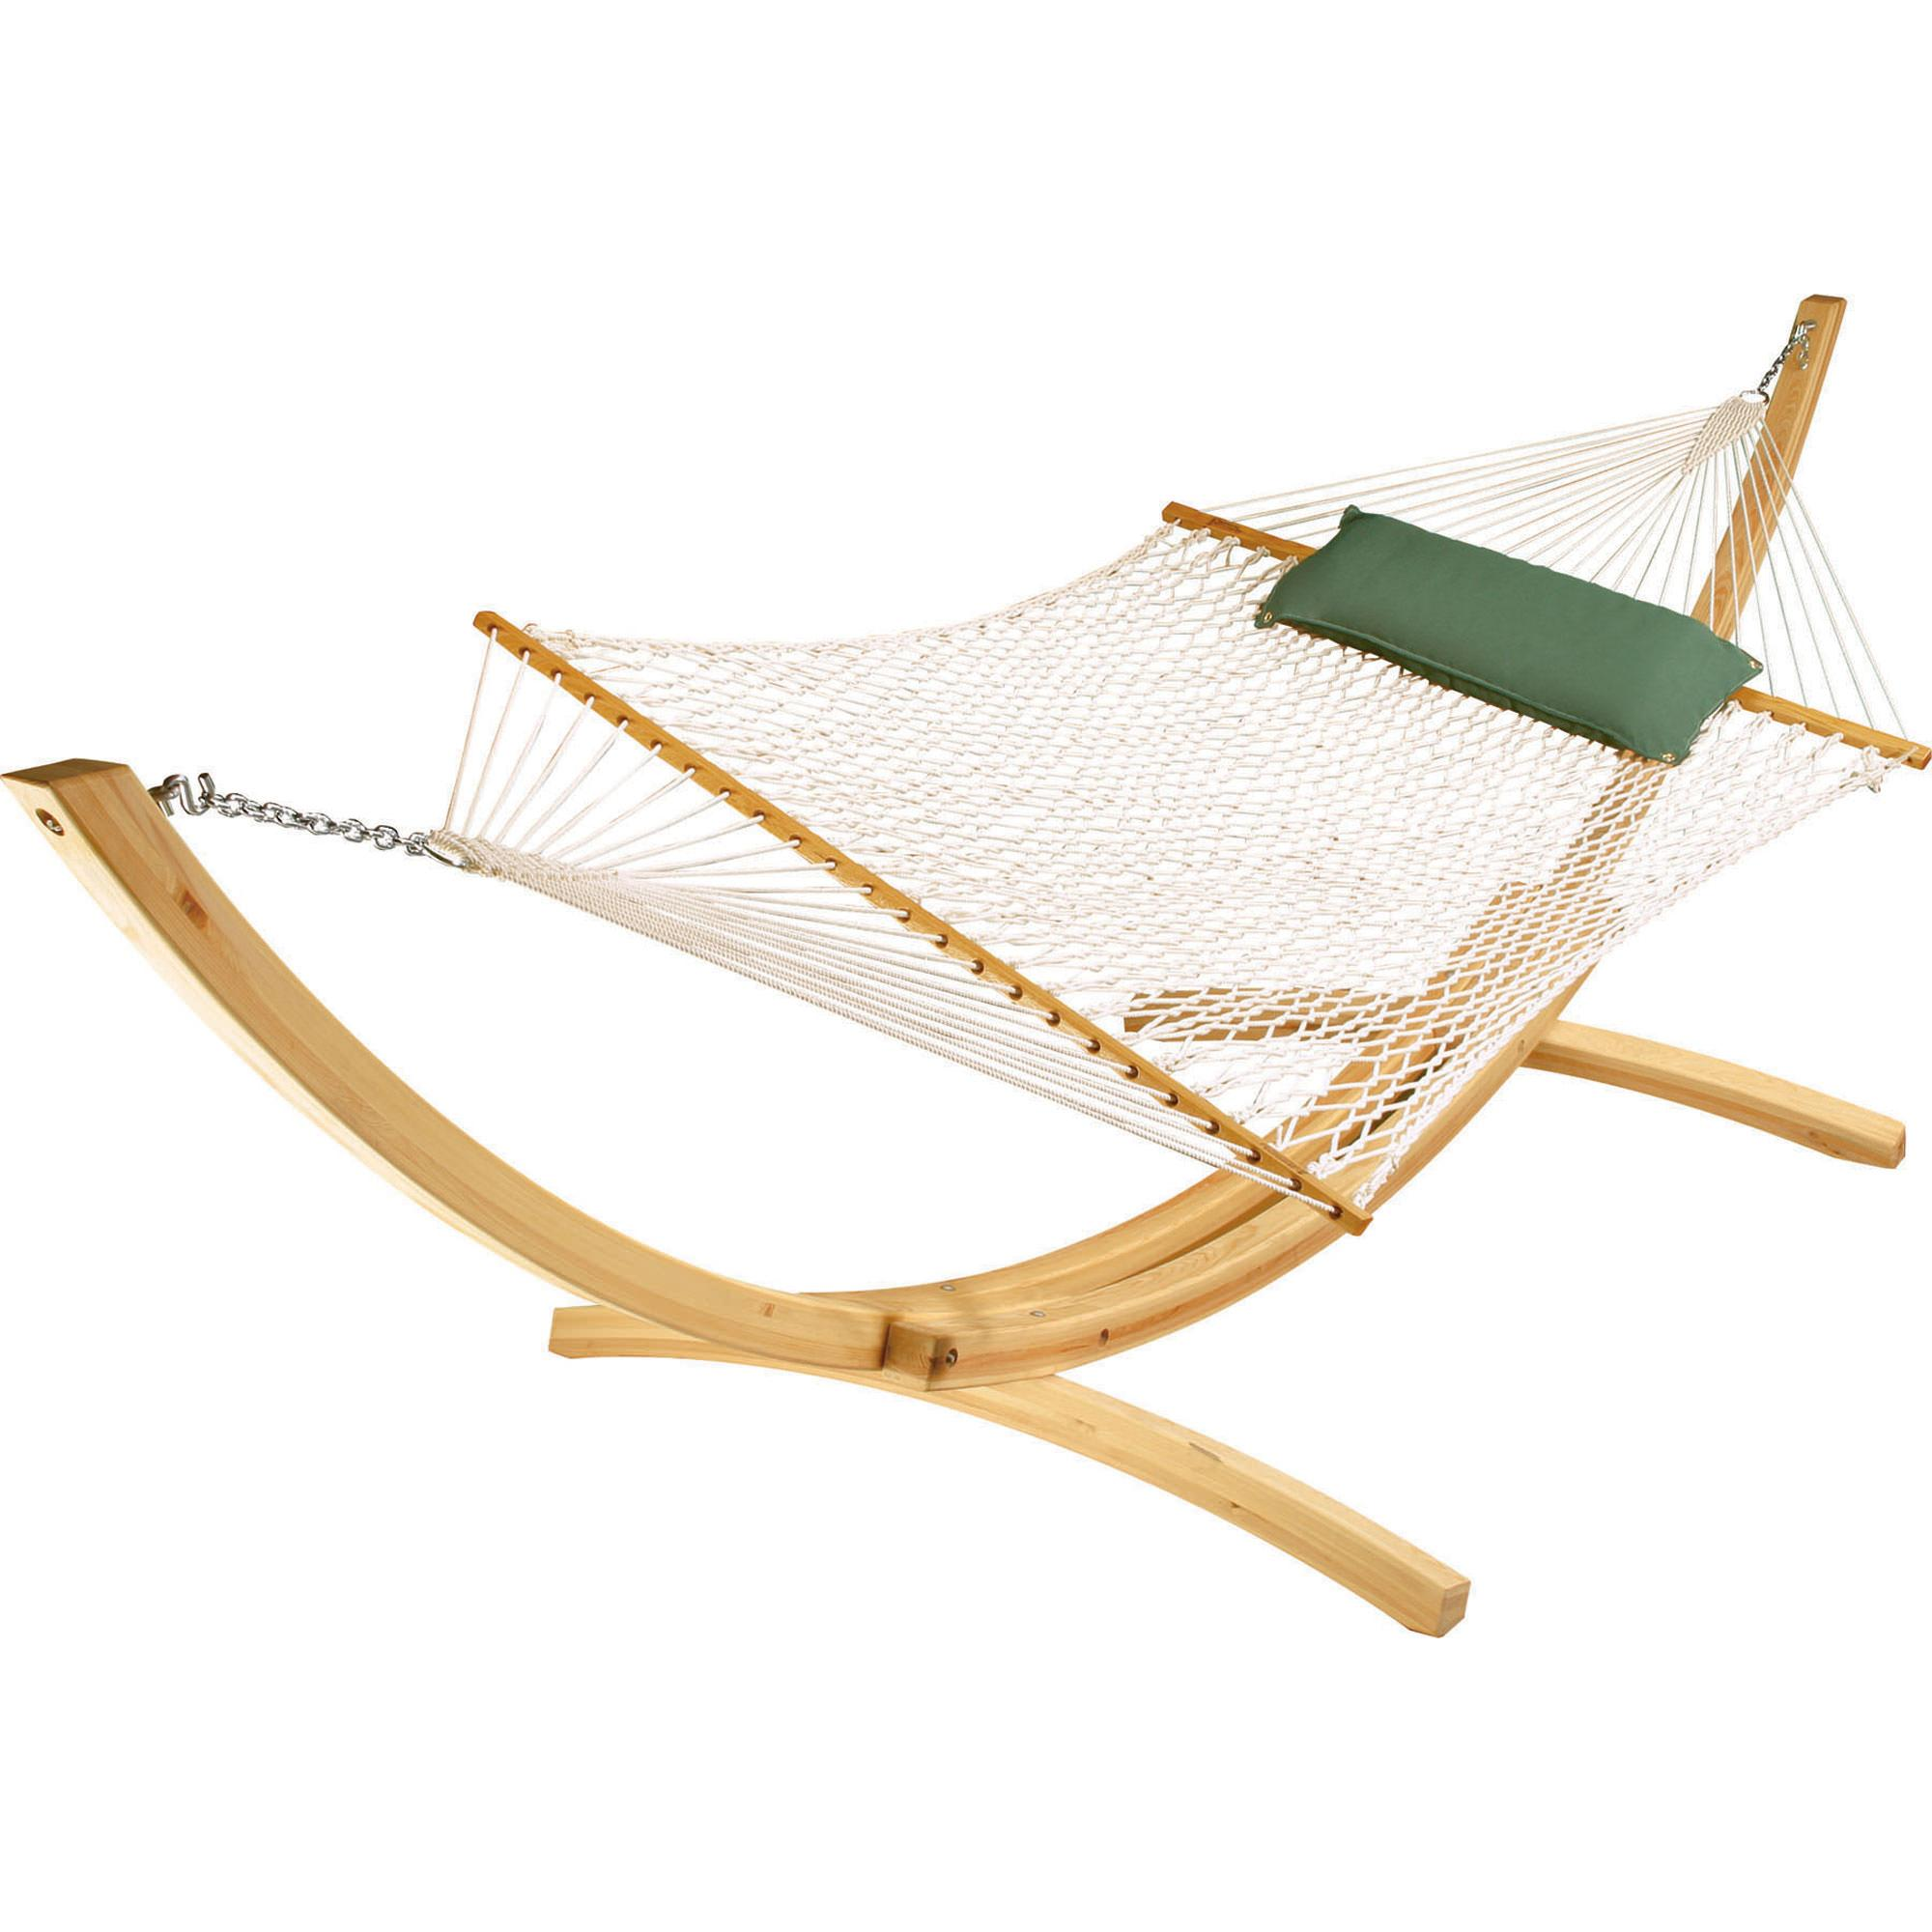 Wonderful Hatteras Hammocks #1: Hatteras-hammocks-deluxe-white-polyester-rope-hammock-1-xx.jpg